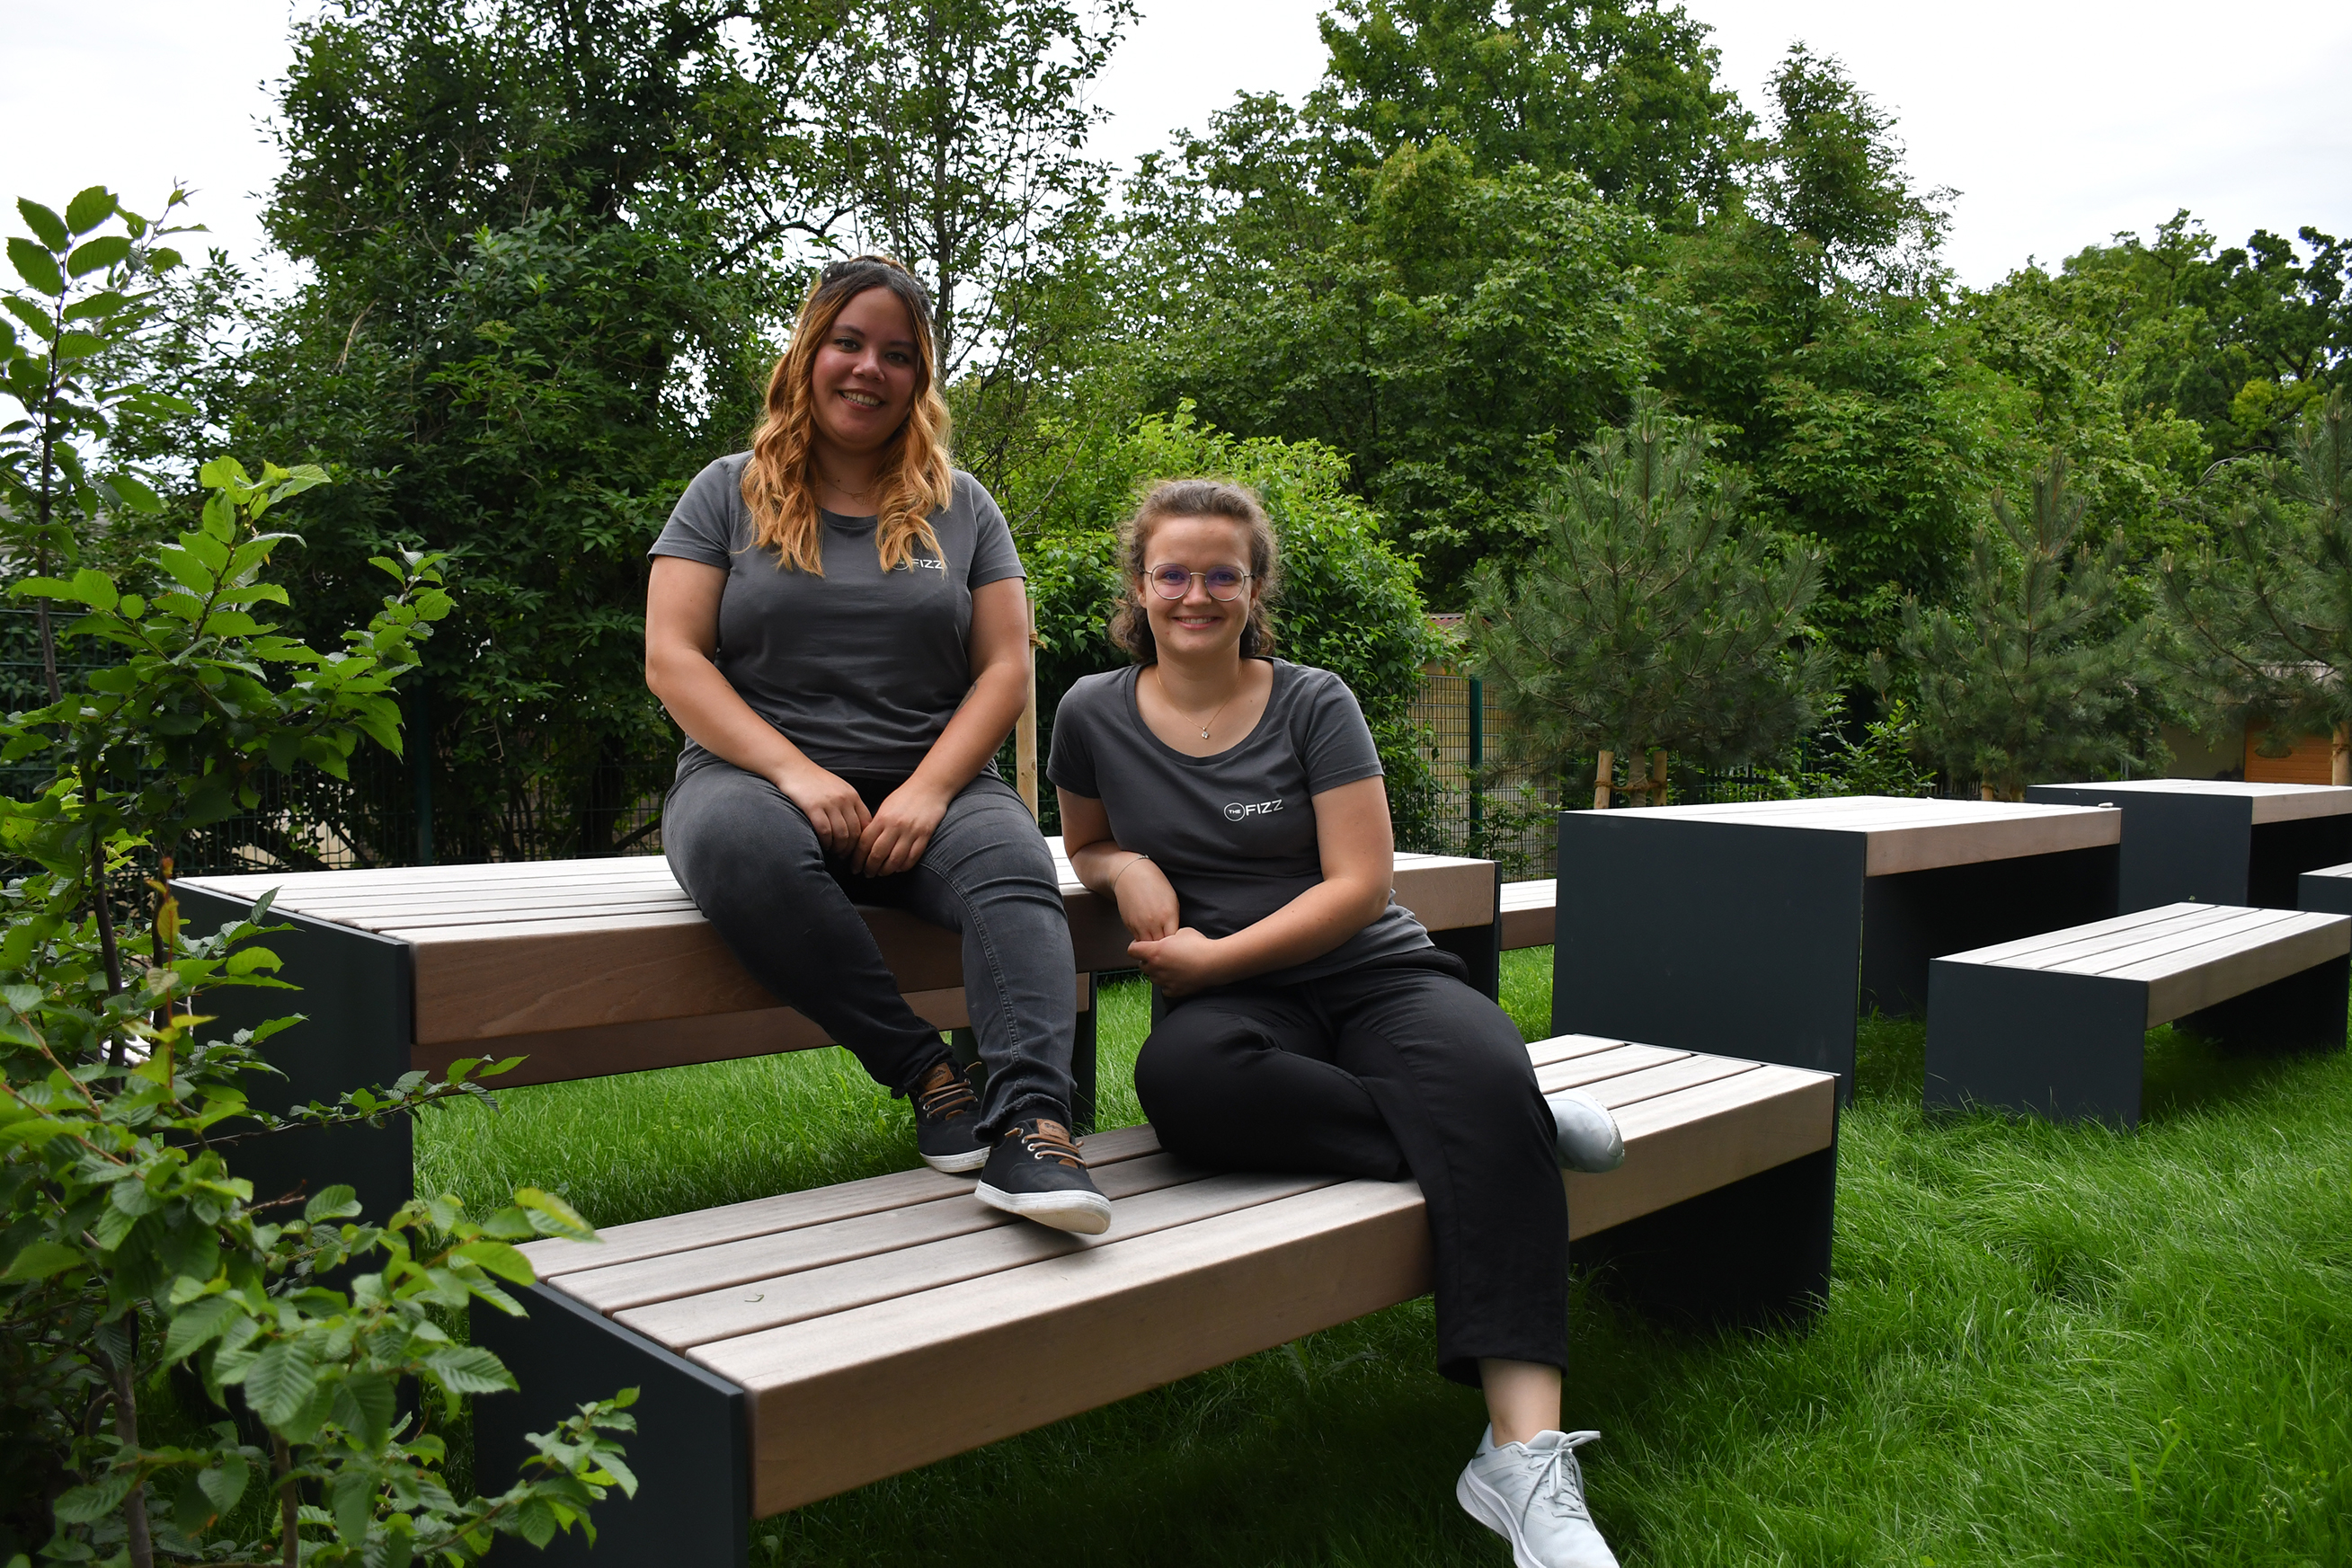 Two girls sitting casually on a bench outside, surrounded by trees. They weat dark grey T-shirts, pants and sneakers and look directly into the camera, smiling.